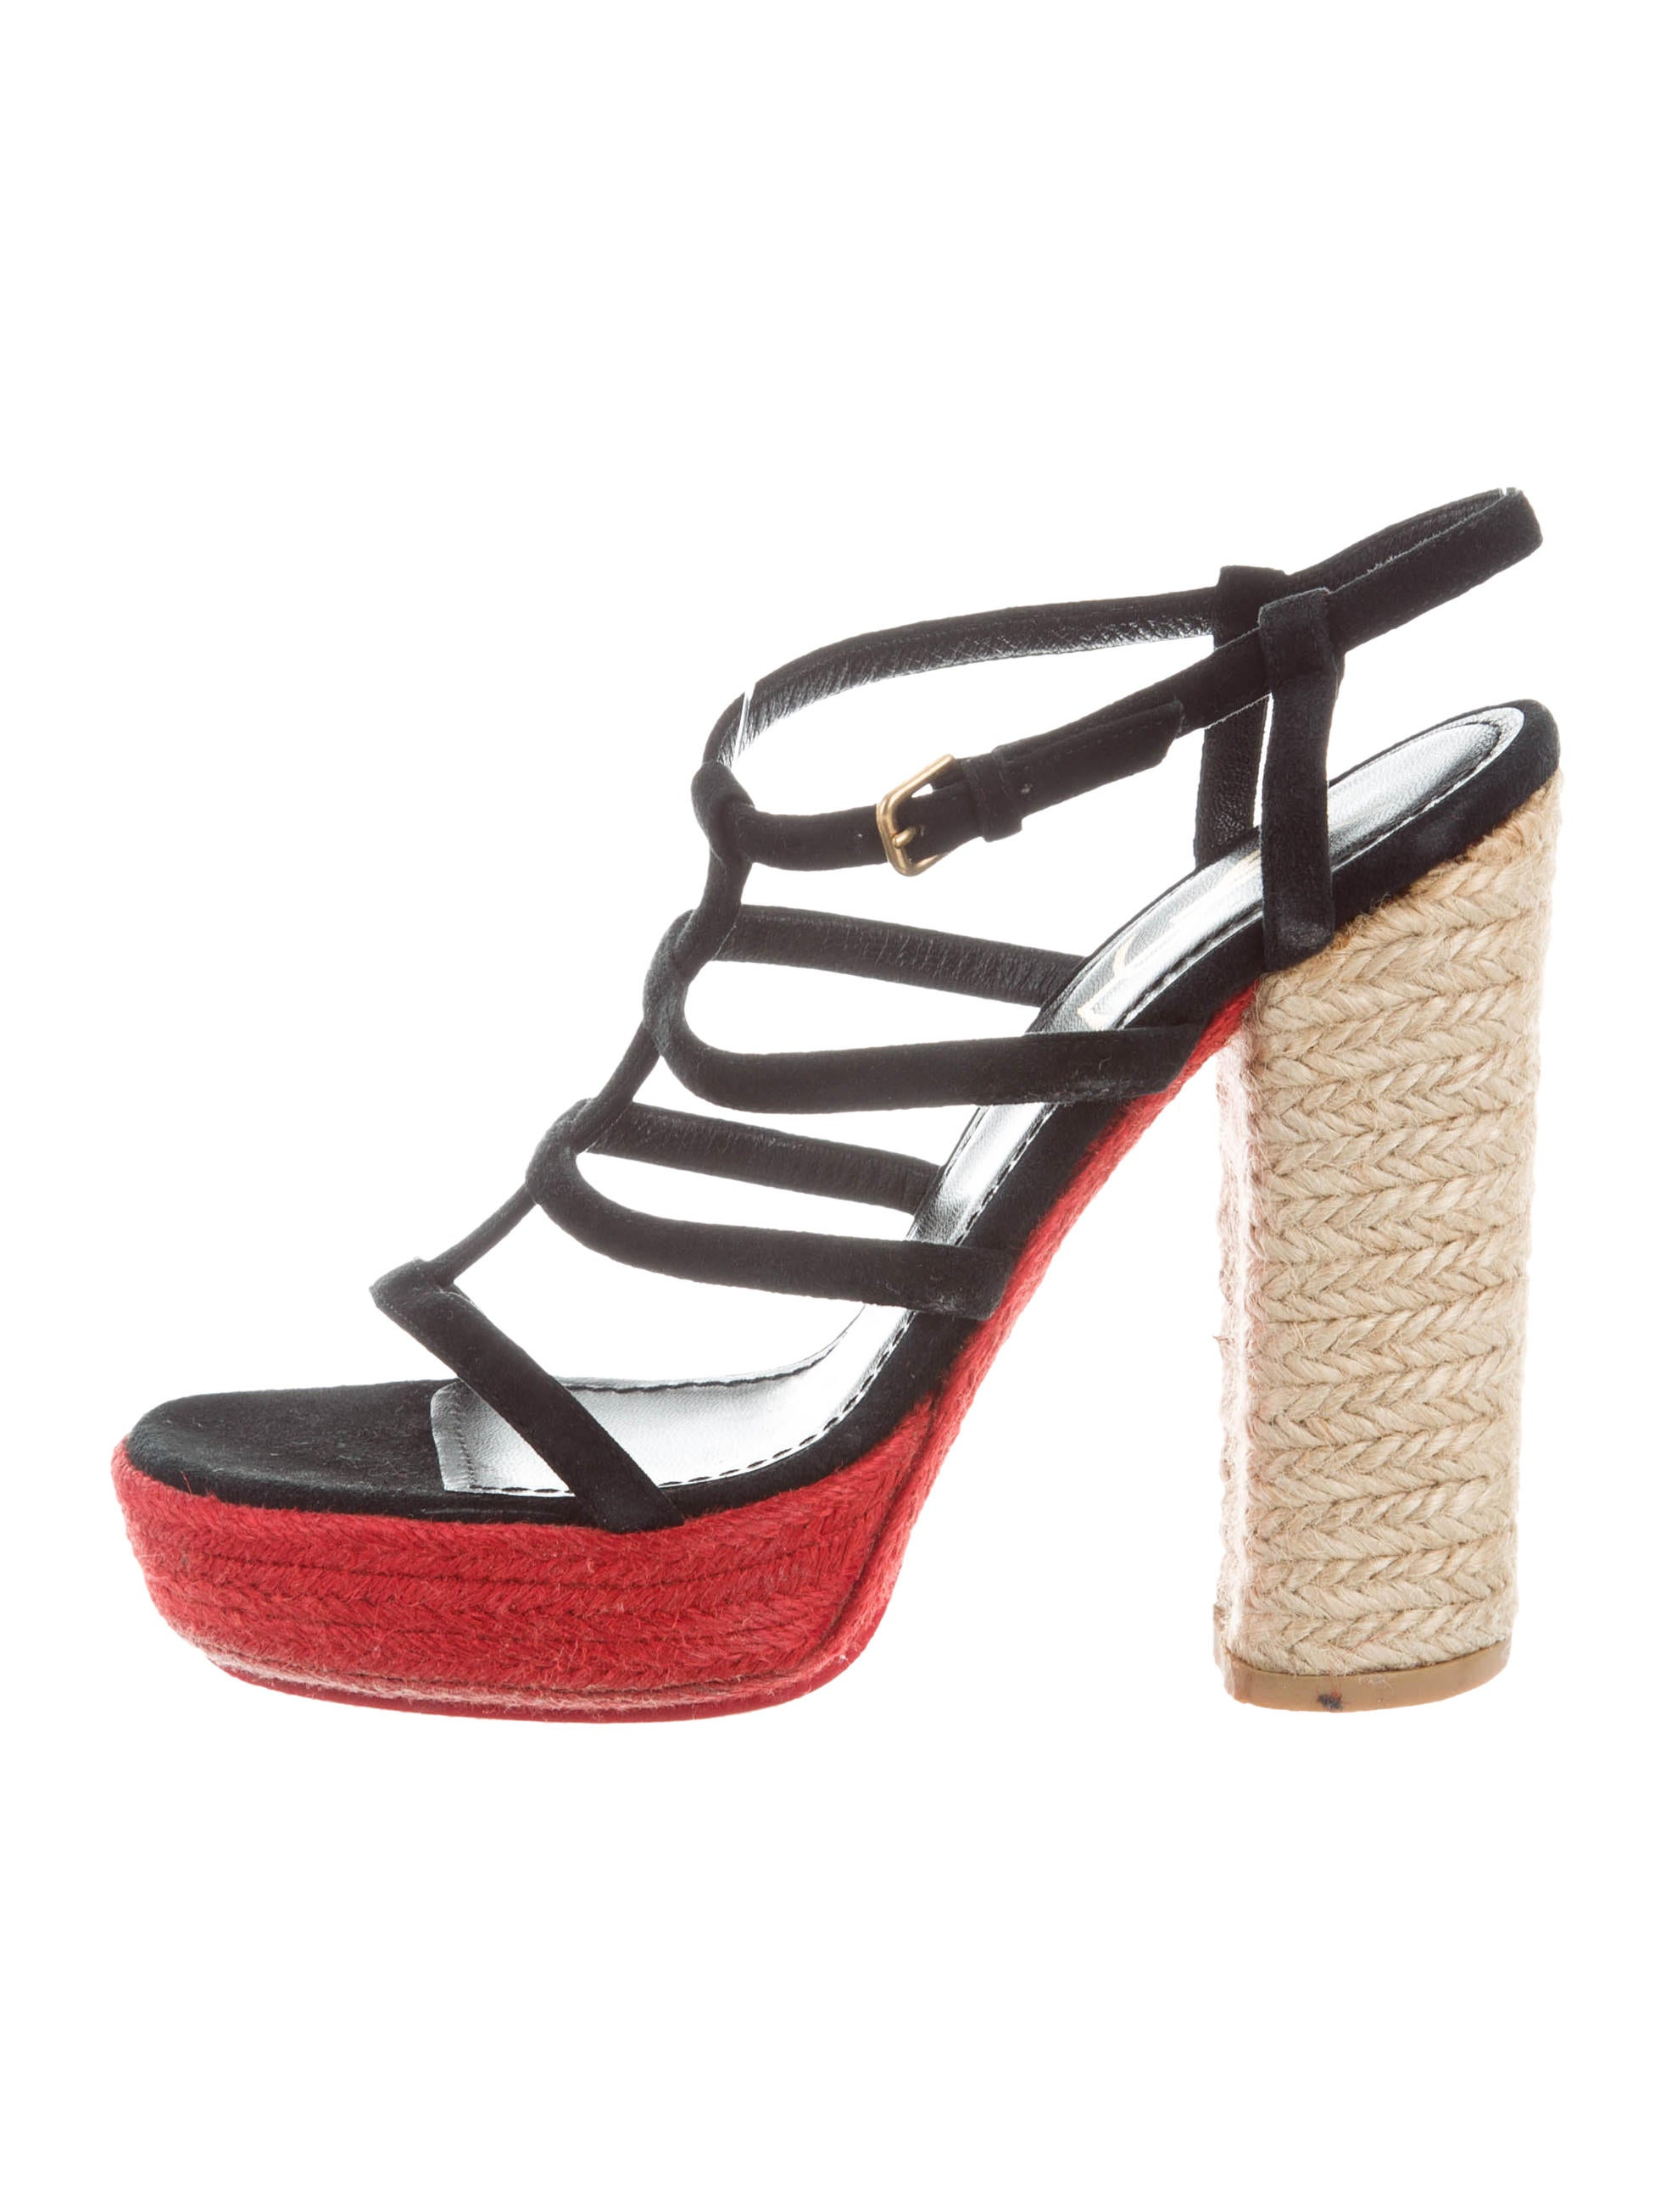 Yves Saint Laurent Platform Cage Sandals cheap outlet locations deals buy cheap buy really cheap shoes online store online 8QyNA